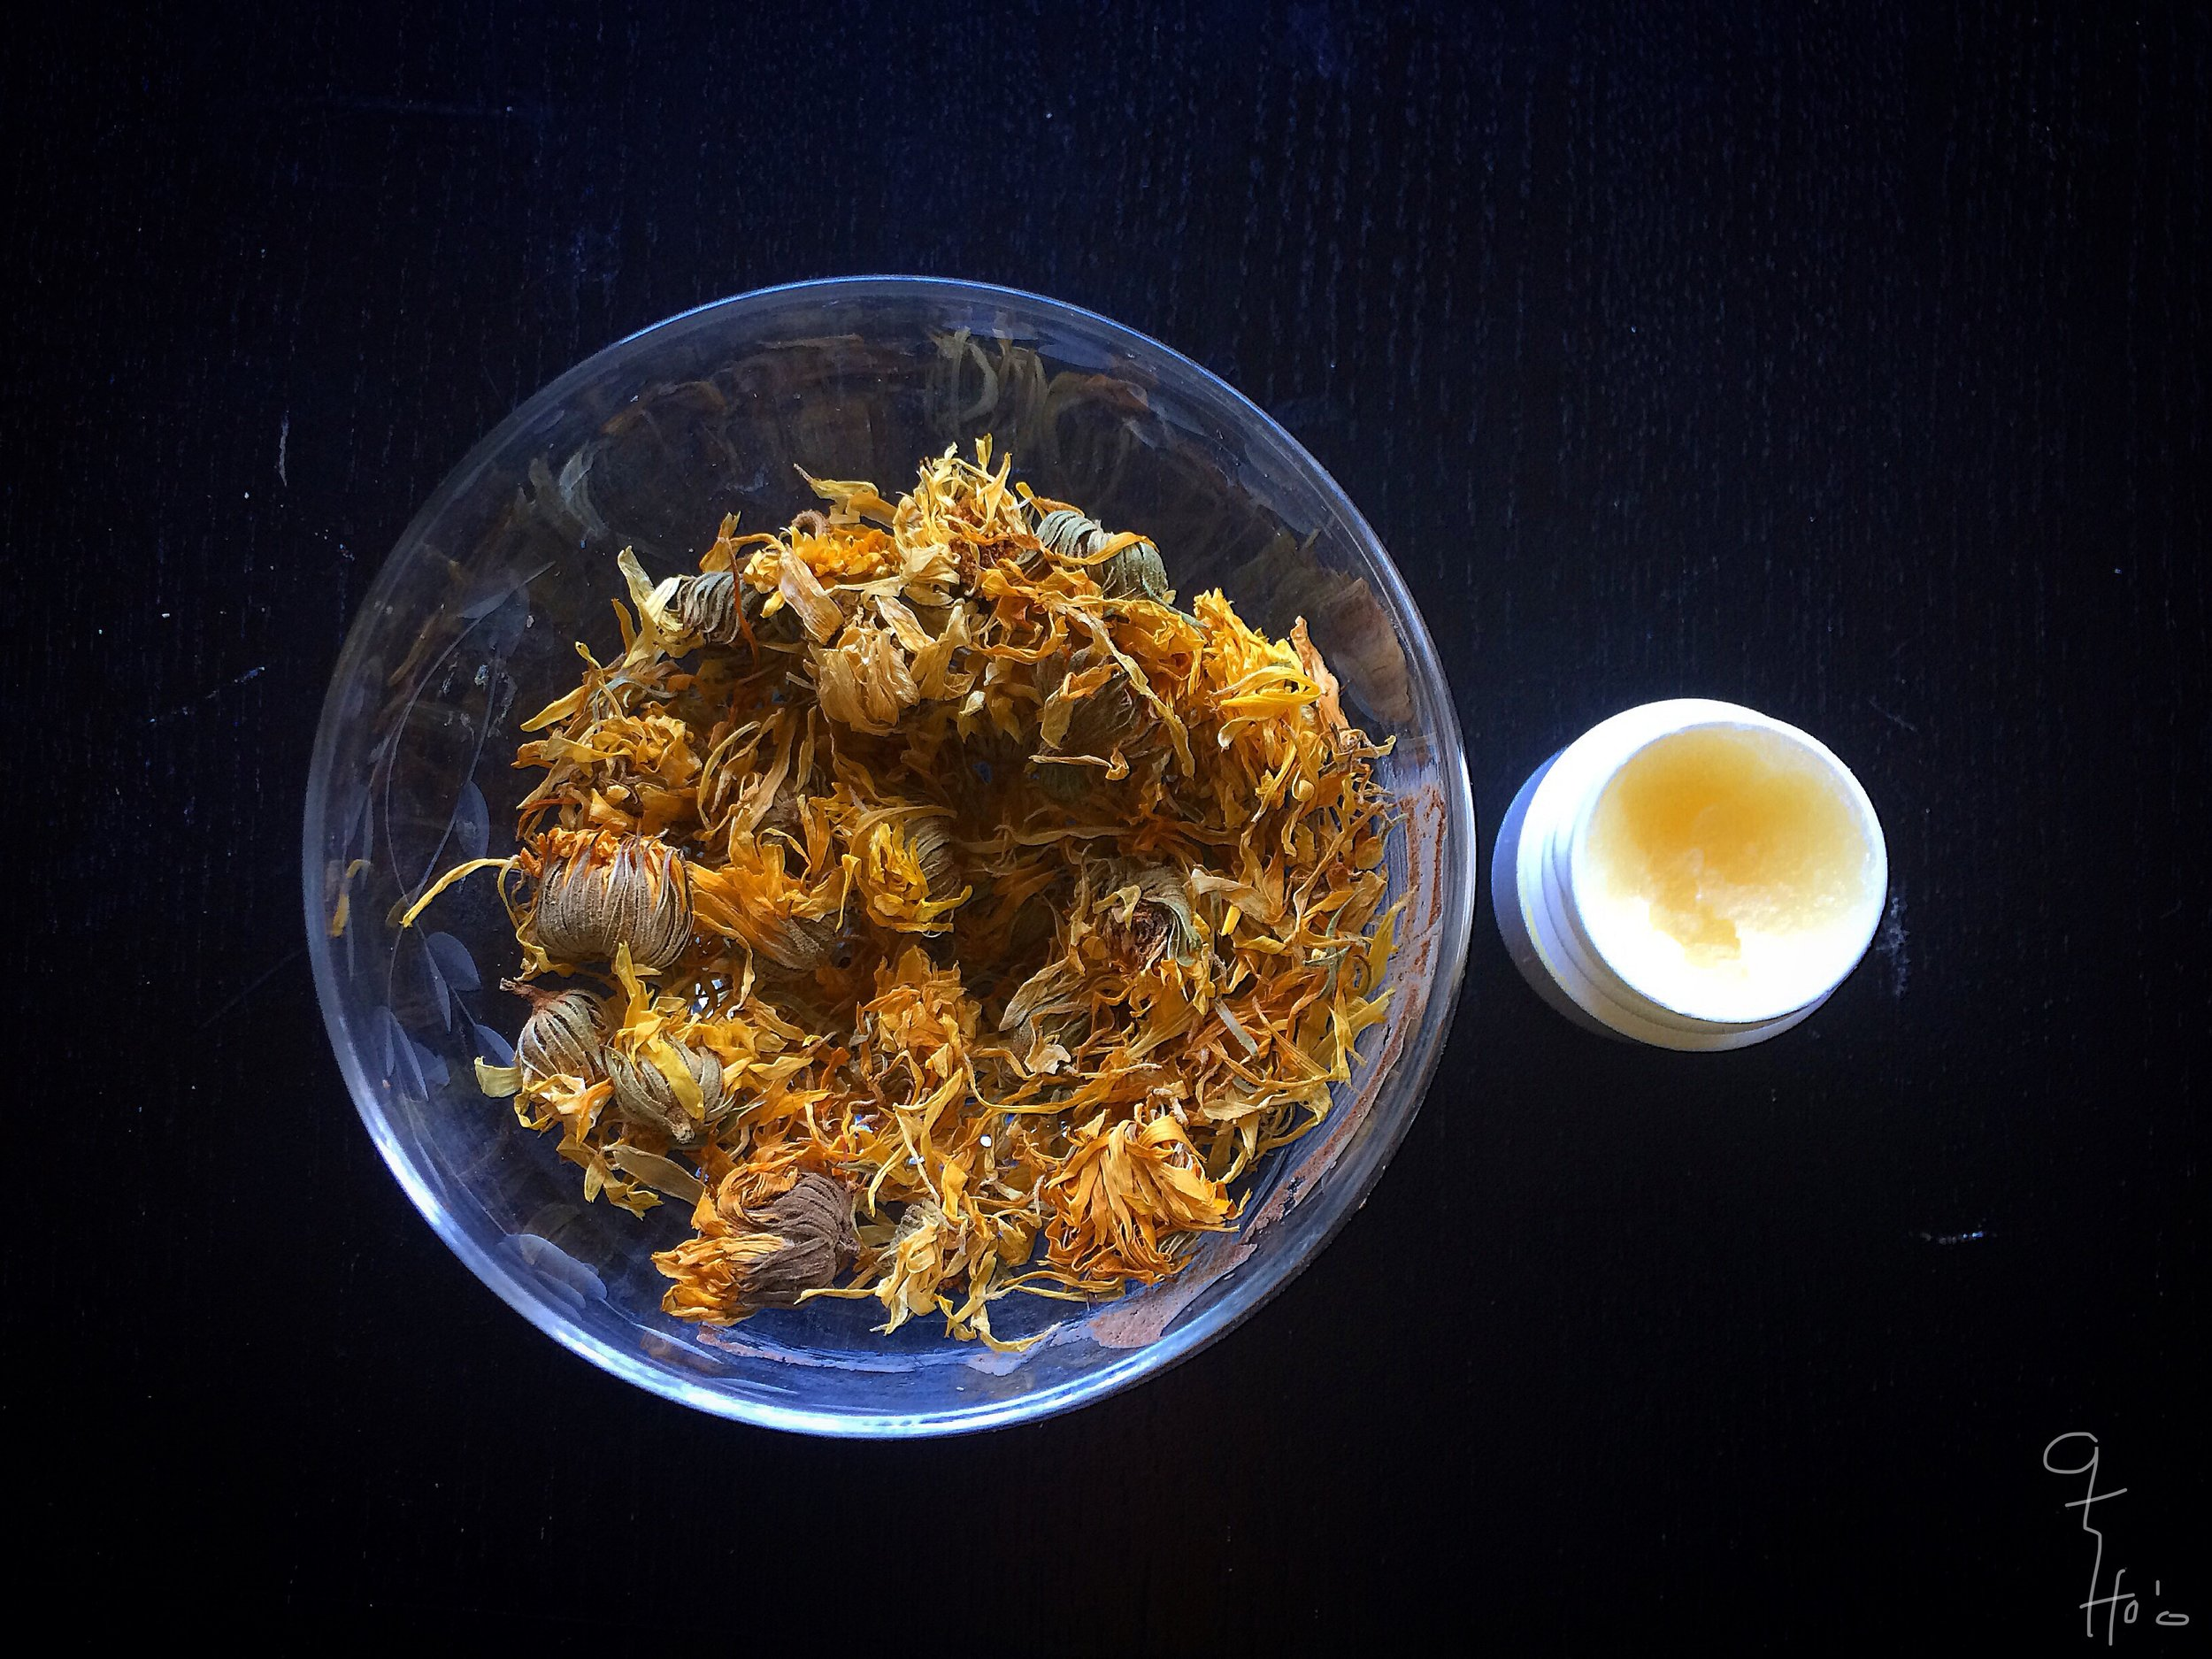 Making calendula oils and salves is part of my winter ritual. Oh yes, you can have seasonal rituals too.